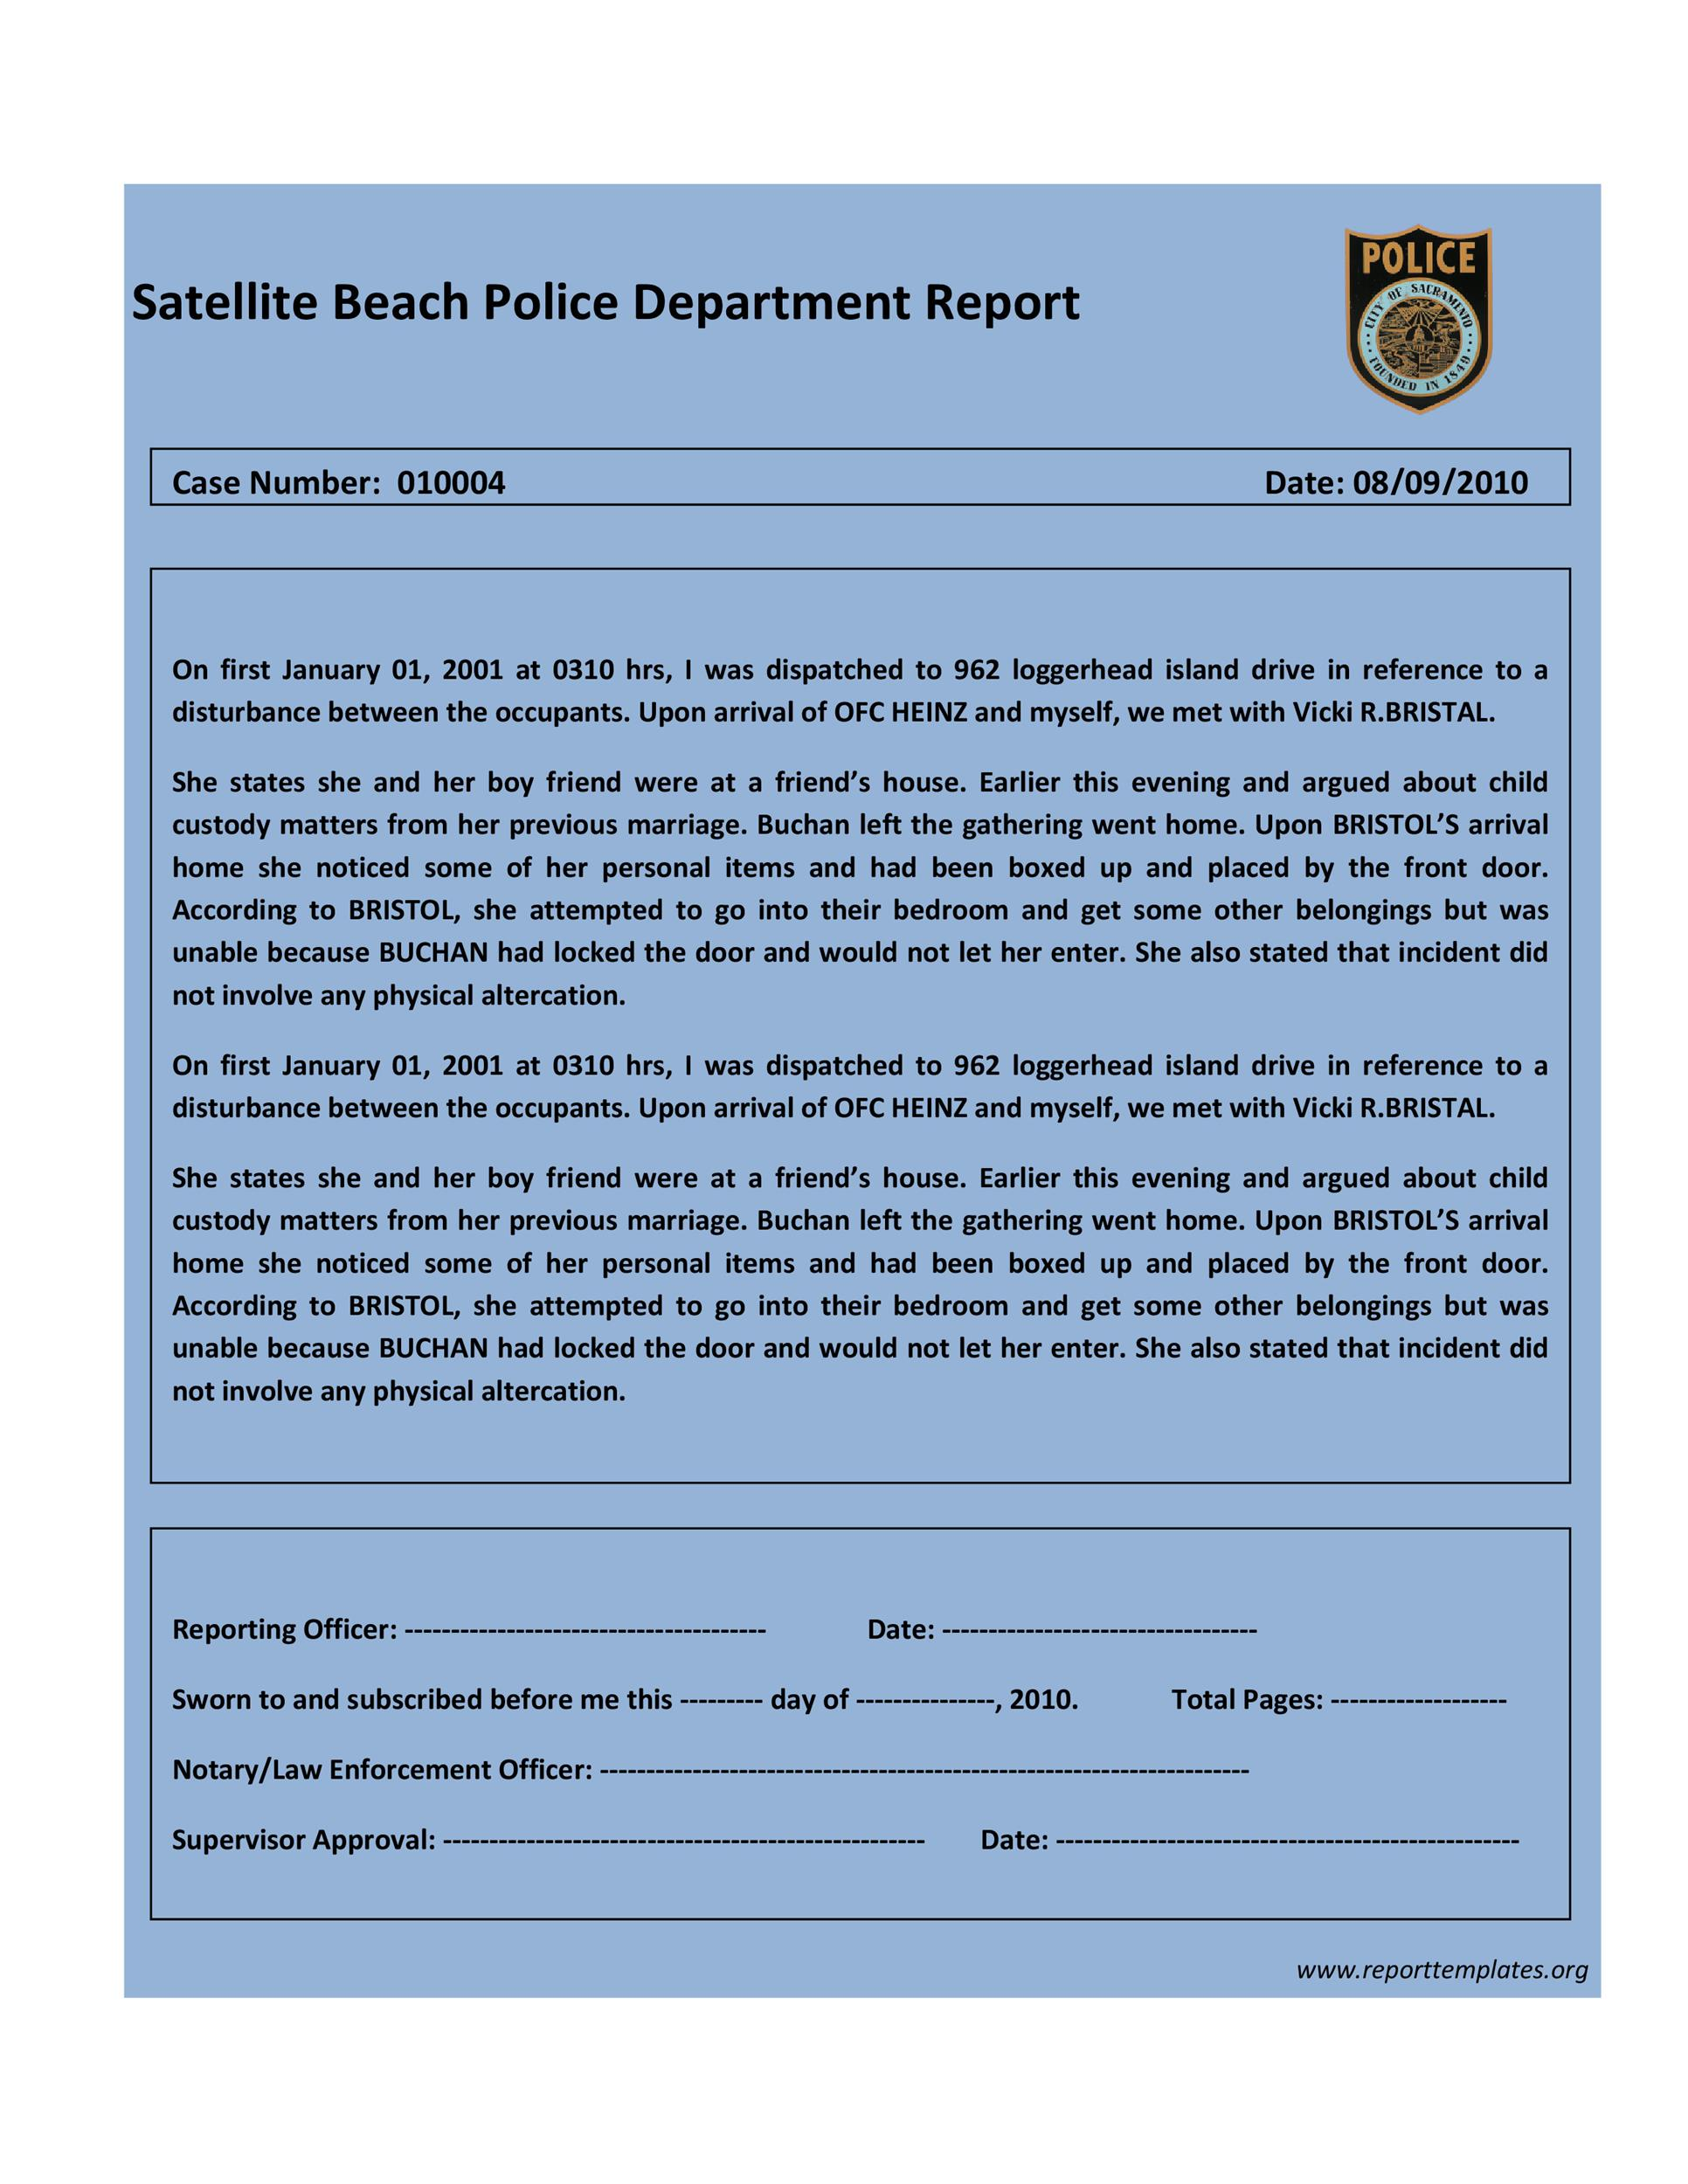 20  police report template  u0026 examples  fake    real   u1405